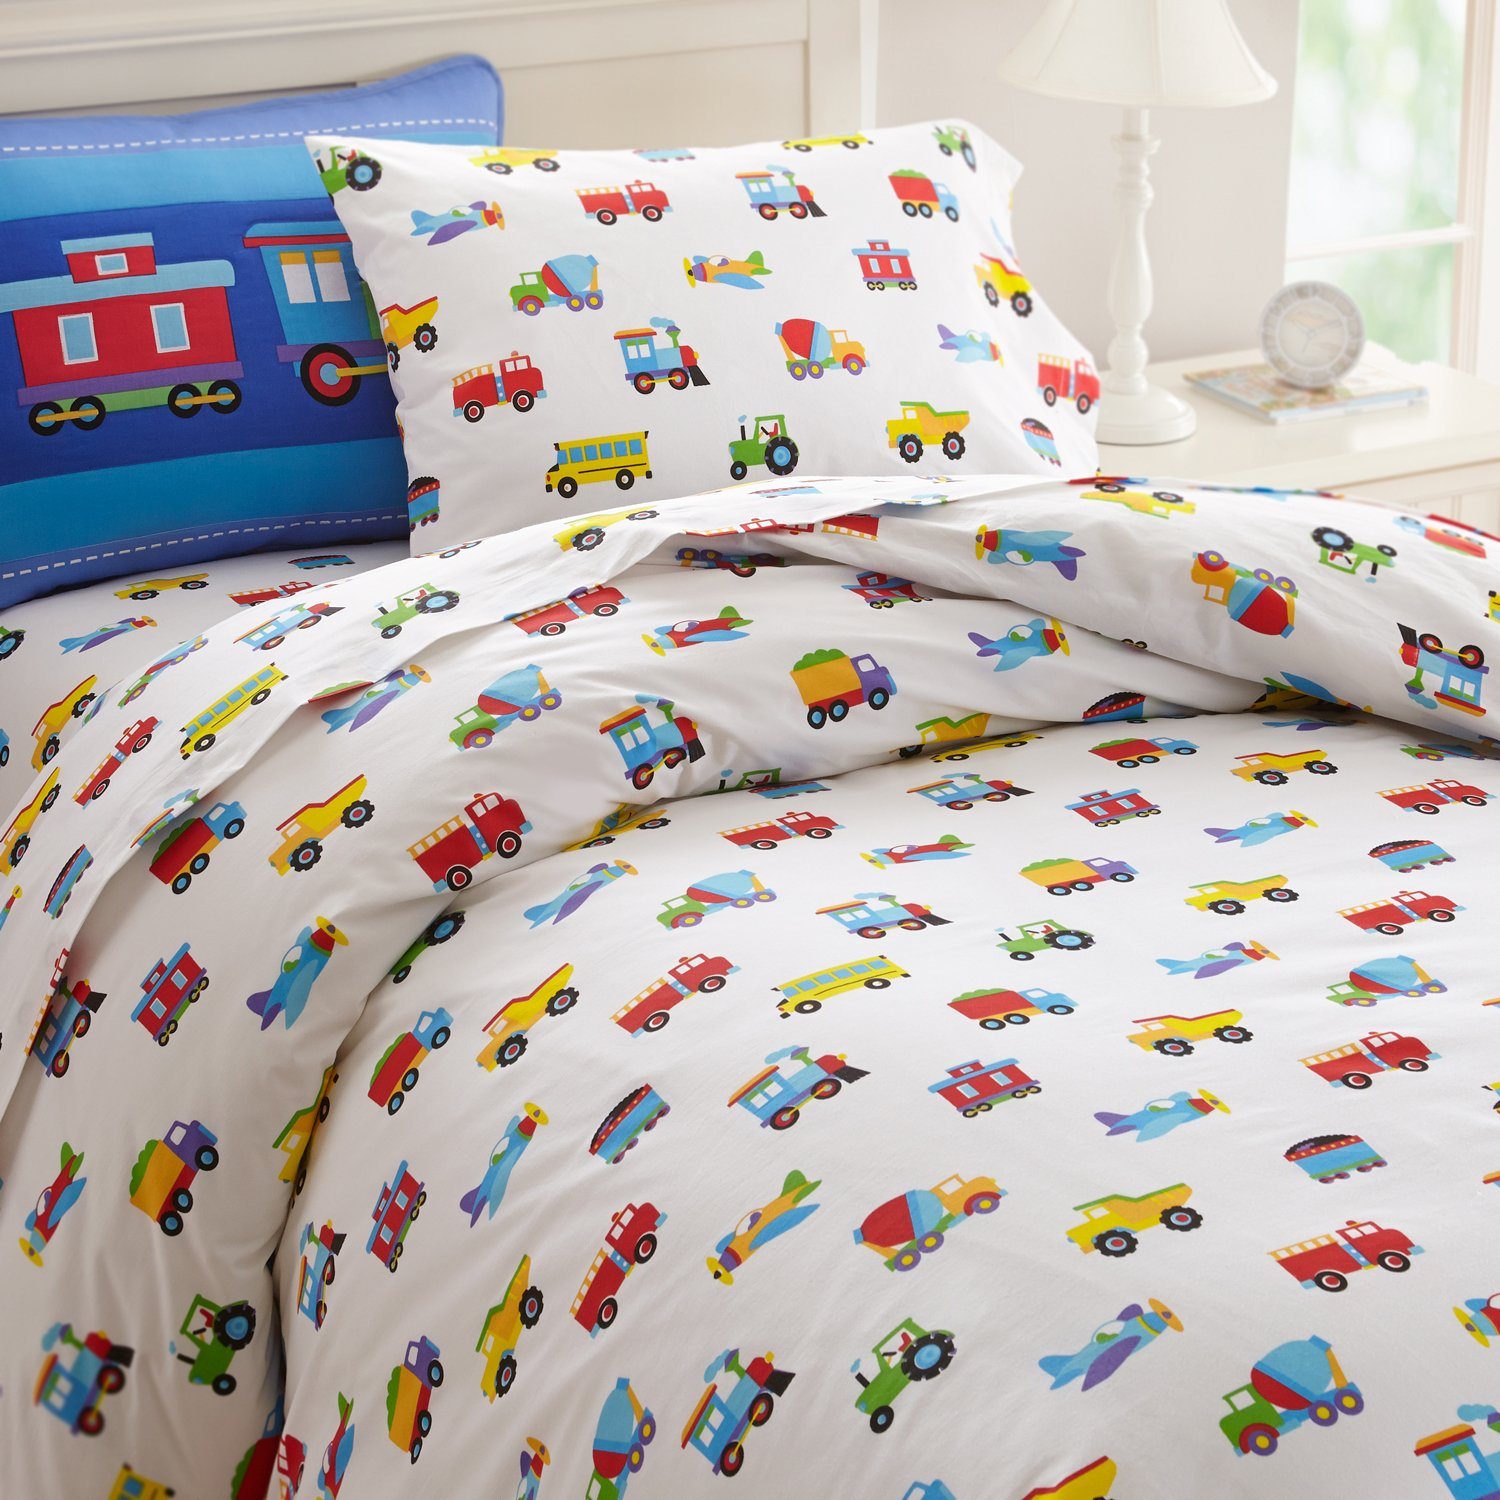 Wildkin Duvet Cover, Twin, Trains Planes & Trucks by Wildkin